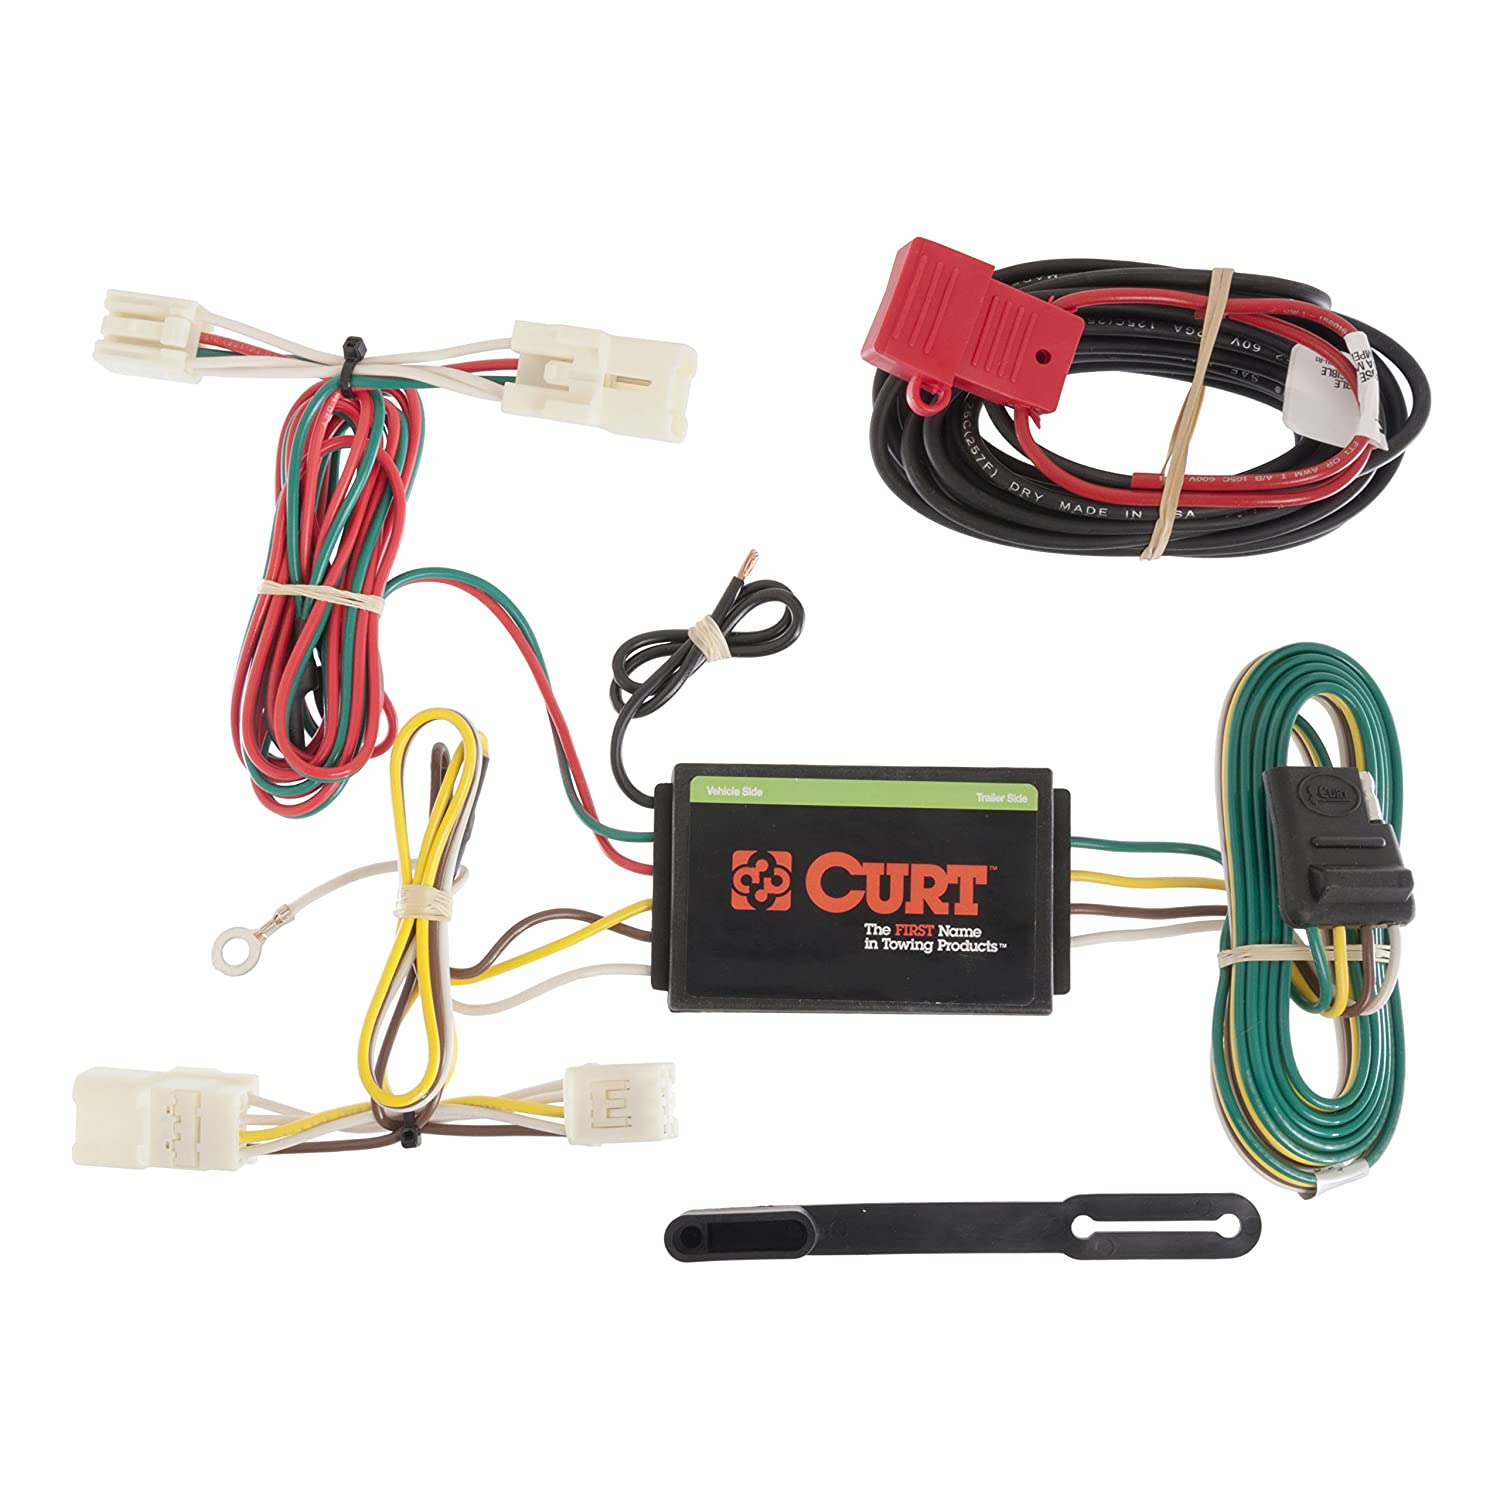 817l7jcQOtL._SL1500_ amazon com curt 56165 custom wiring harness automotive trailer hitch wiring harness at readyjetset.co